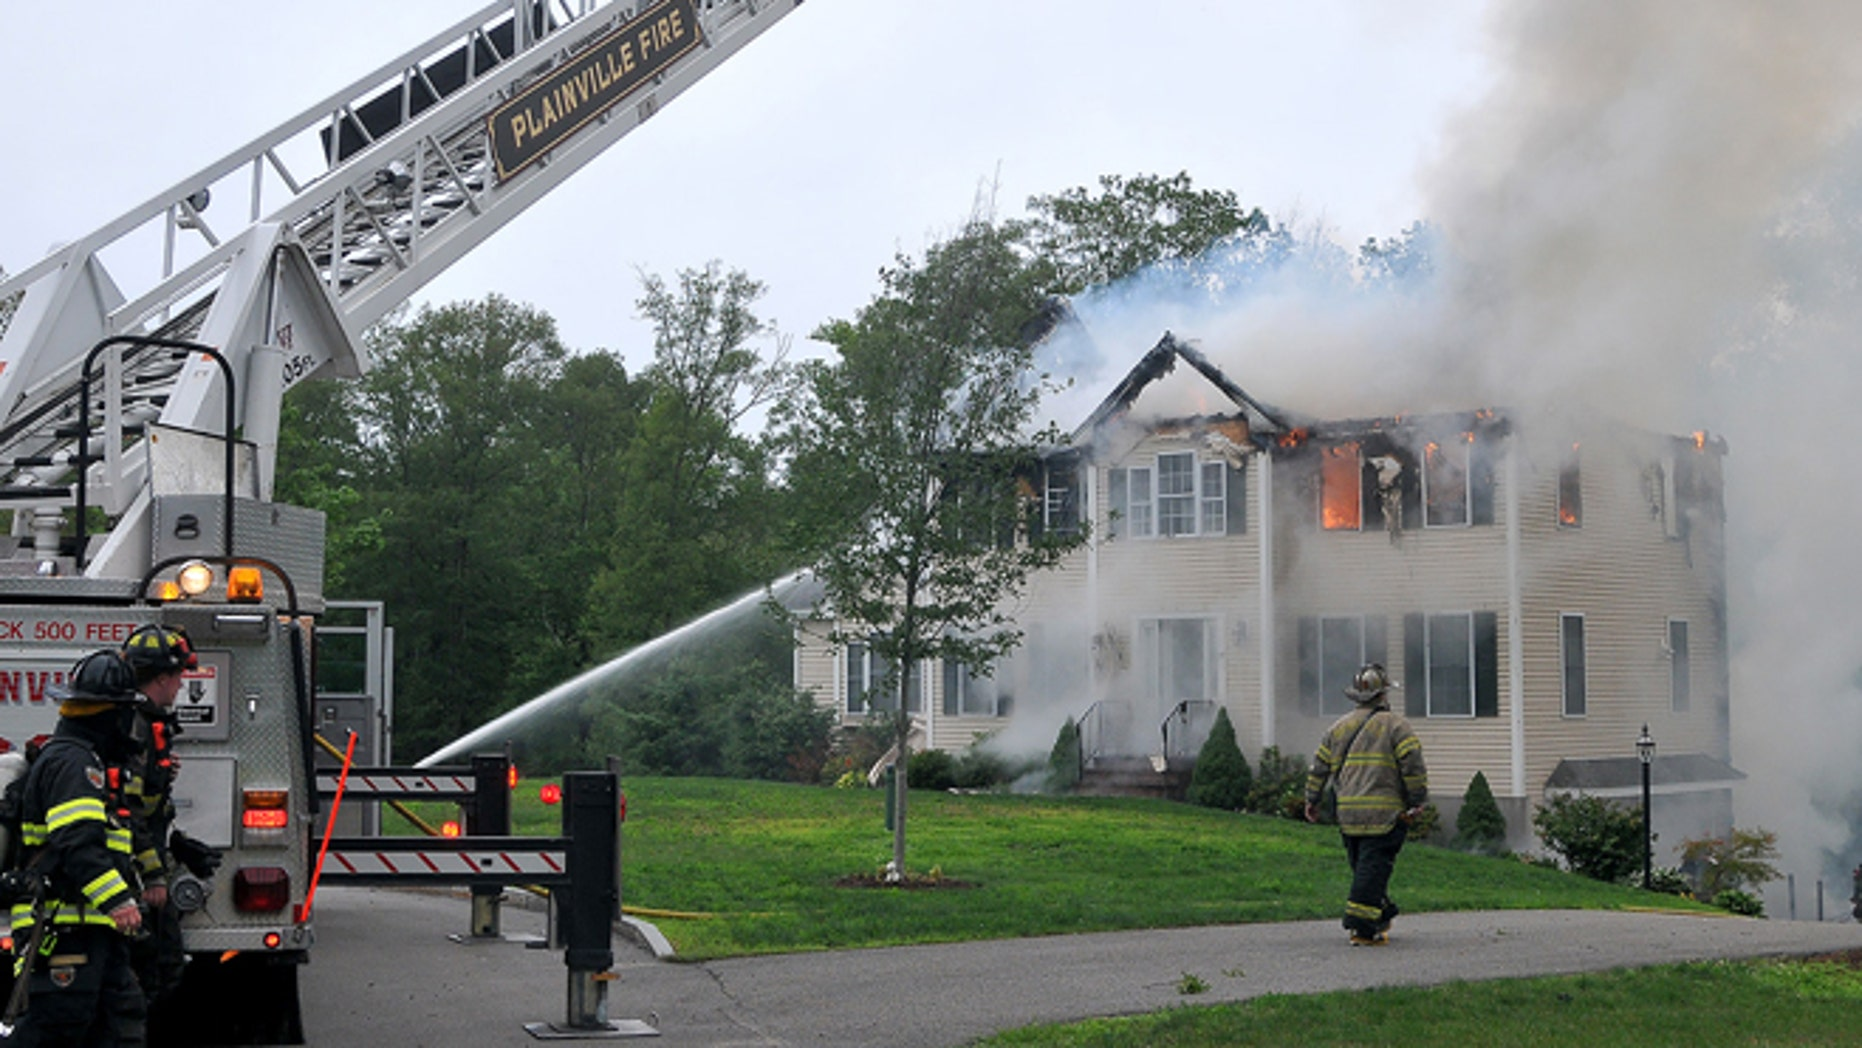 June 28, 2015: Firefighters work to extinguish flames after a small plane crashed into a house in Plainville, Mass. Jim Peters of the Federal Aviation Administration says the Beechcraft plane crashed into the house at about 5:45 p.m. Sunday. It had taken off from Lancaster Airport in Pennsylvania and was en route to an airport in Norwood, Mass.